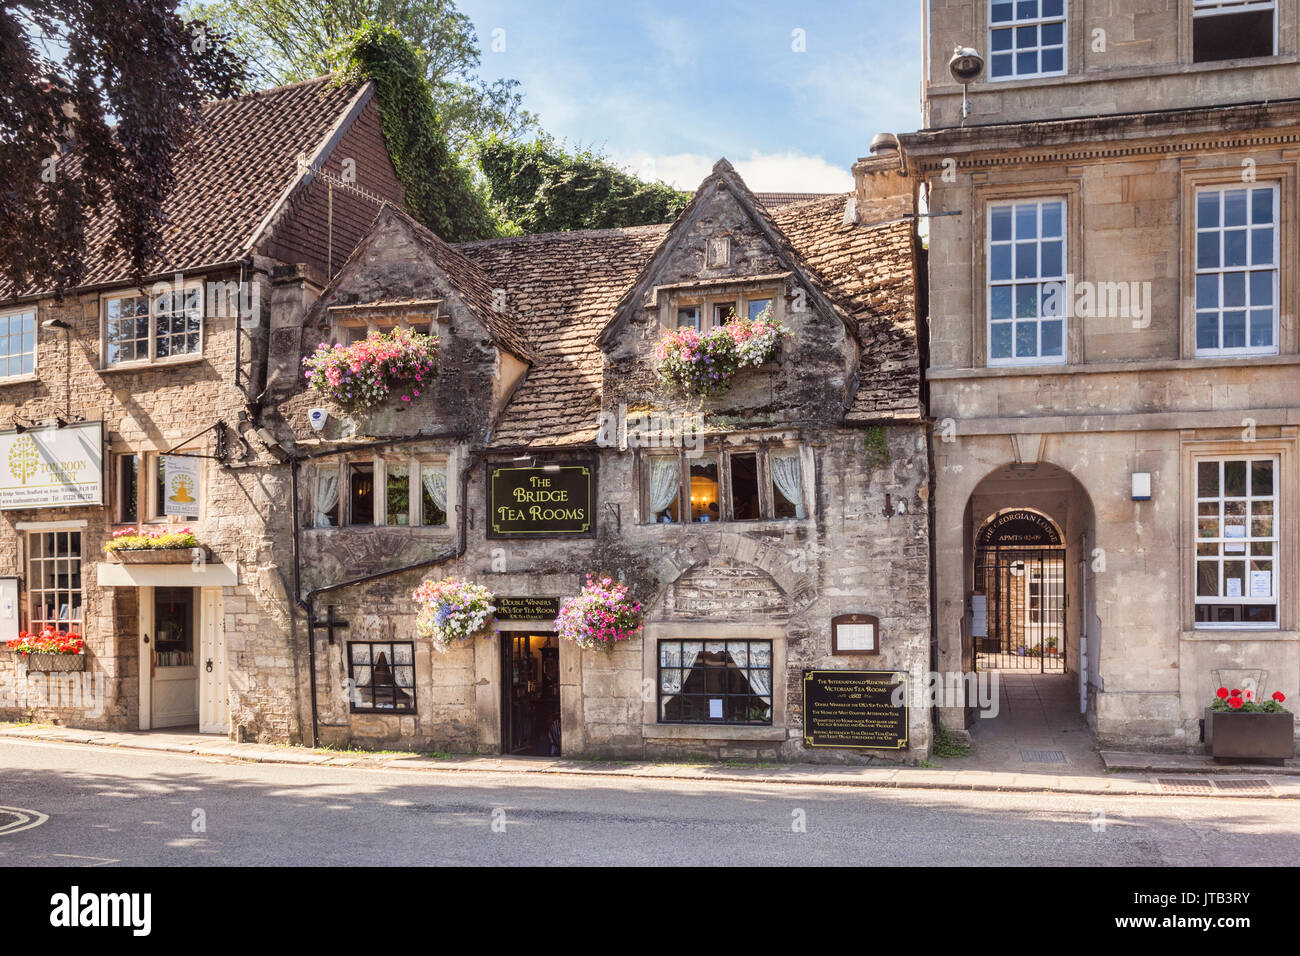 7 July 2017: Bradford on Avon, Somerset, England, UK - The 16th century Bridge Tea Rooms, one of the top places in the UK for afternoon tea. - Stock Image